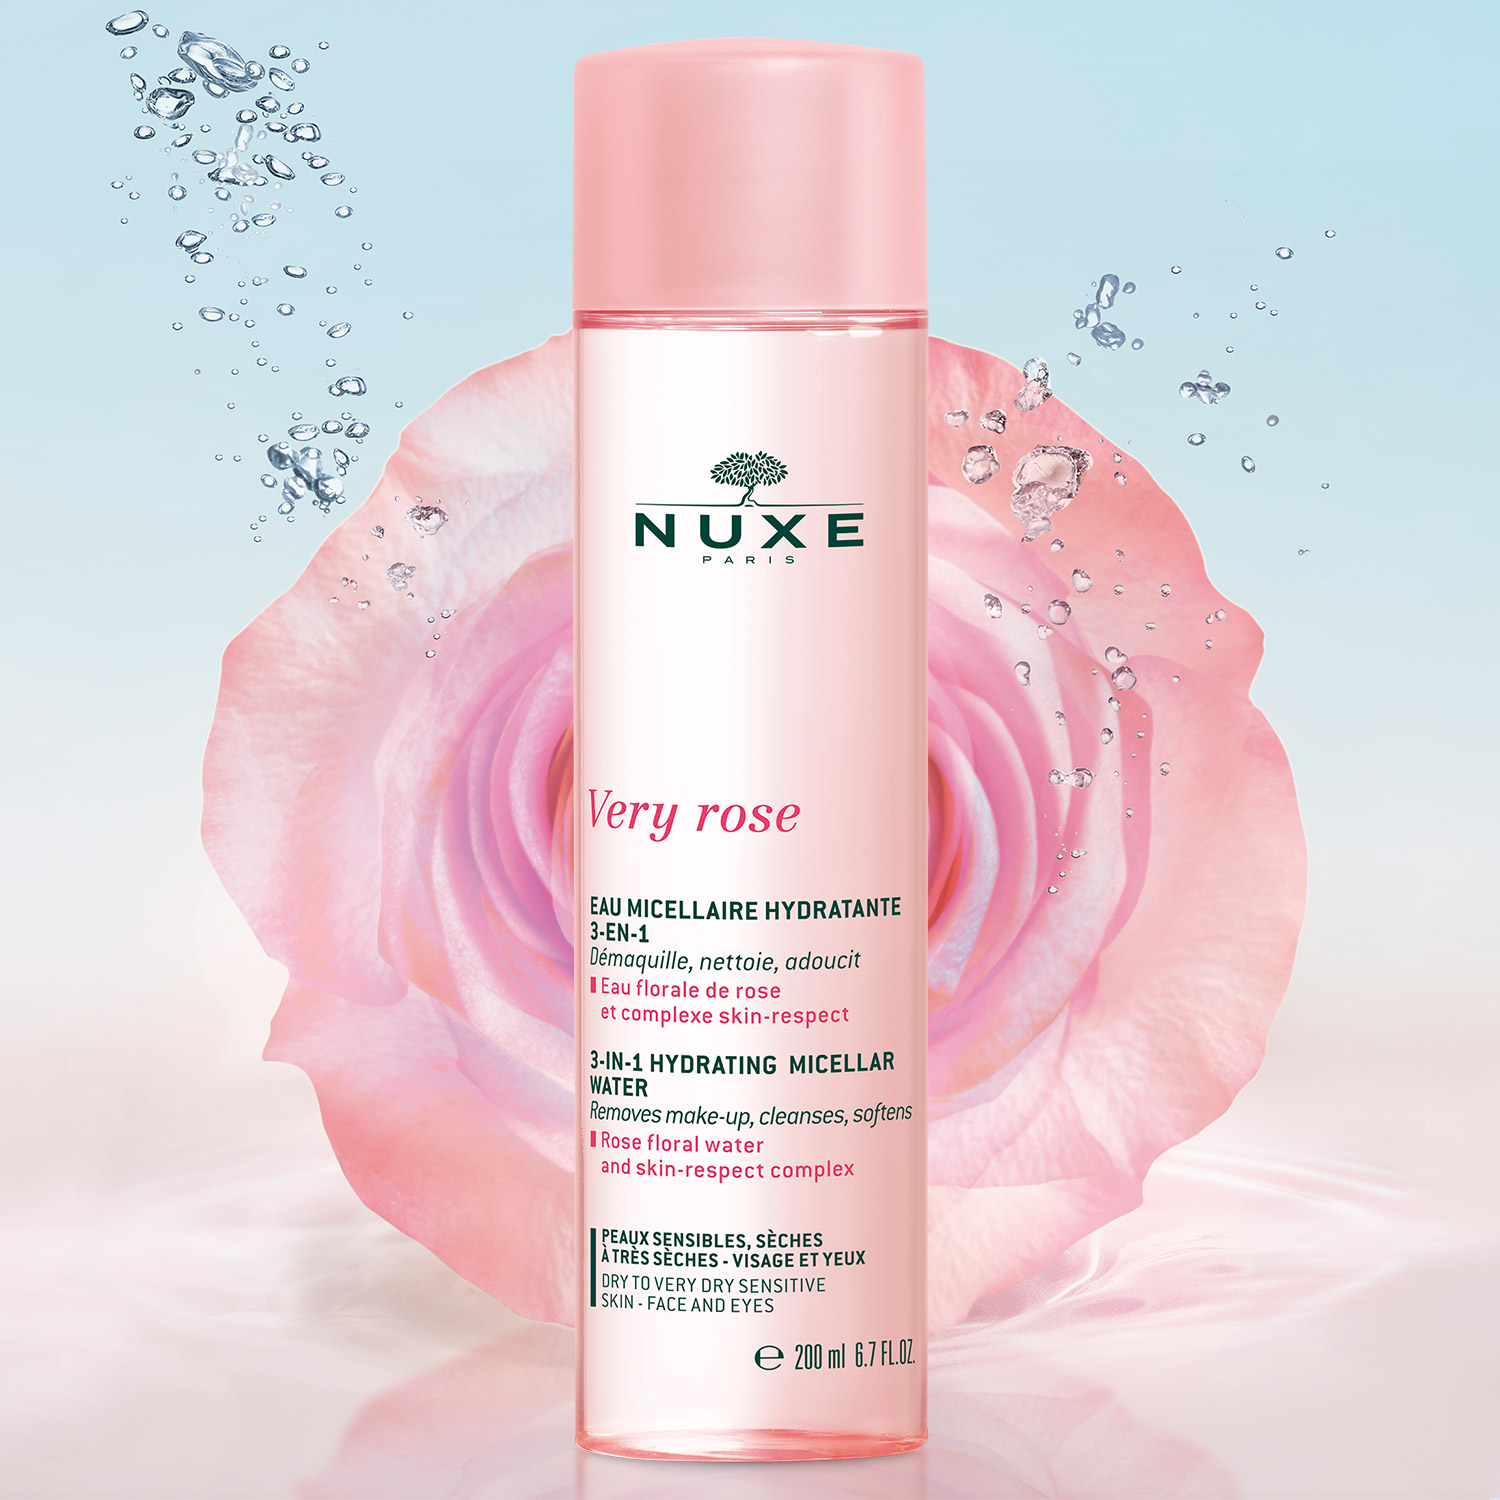 3264680022036-vn051201-fp-nuxe-very_rose-eau_micellaire_ps-200ml-2020